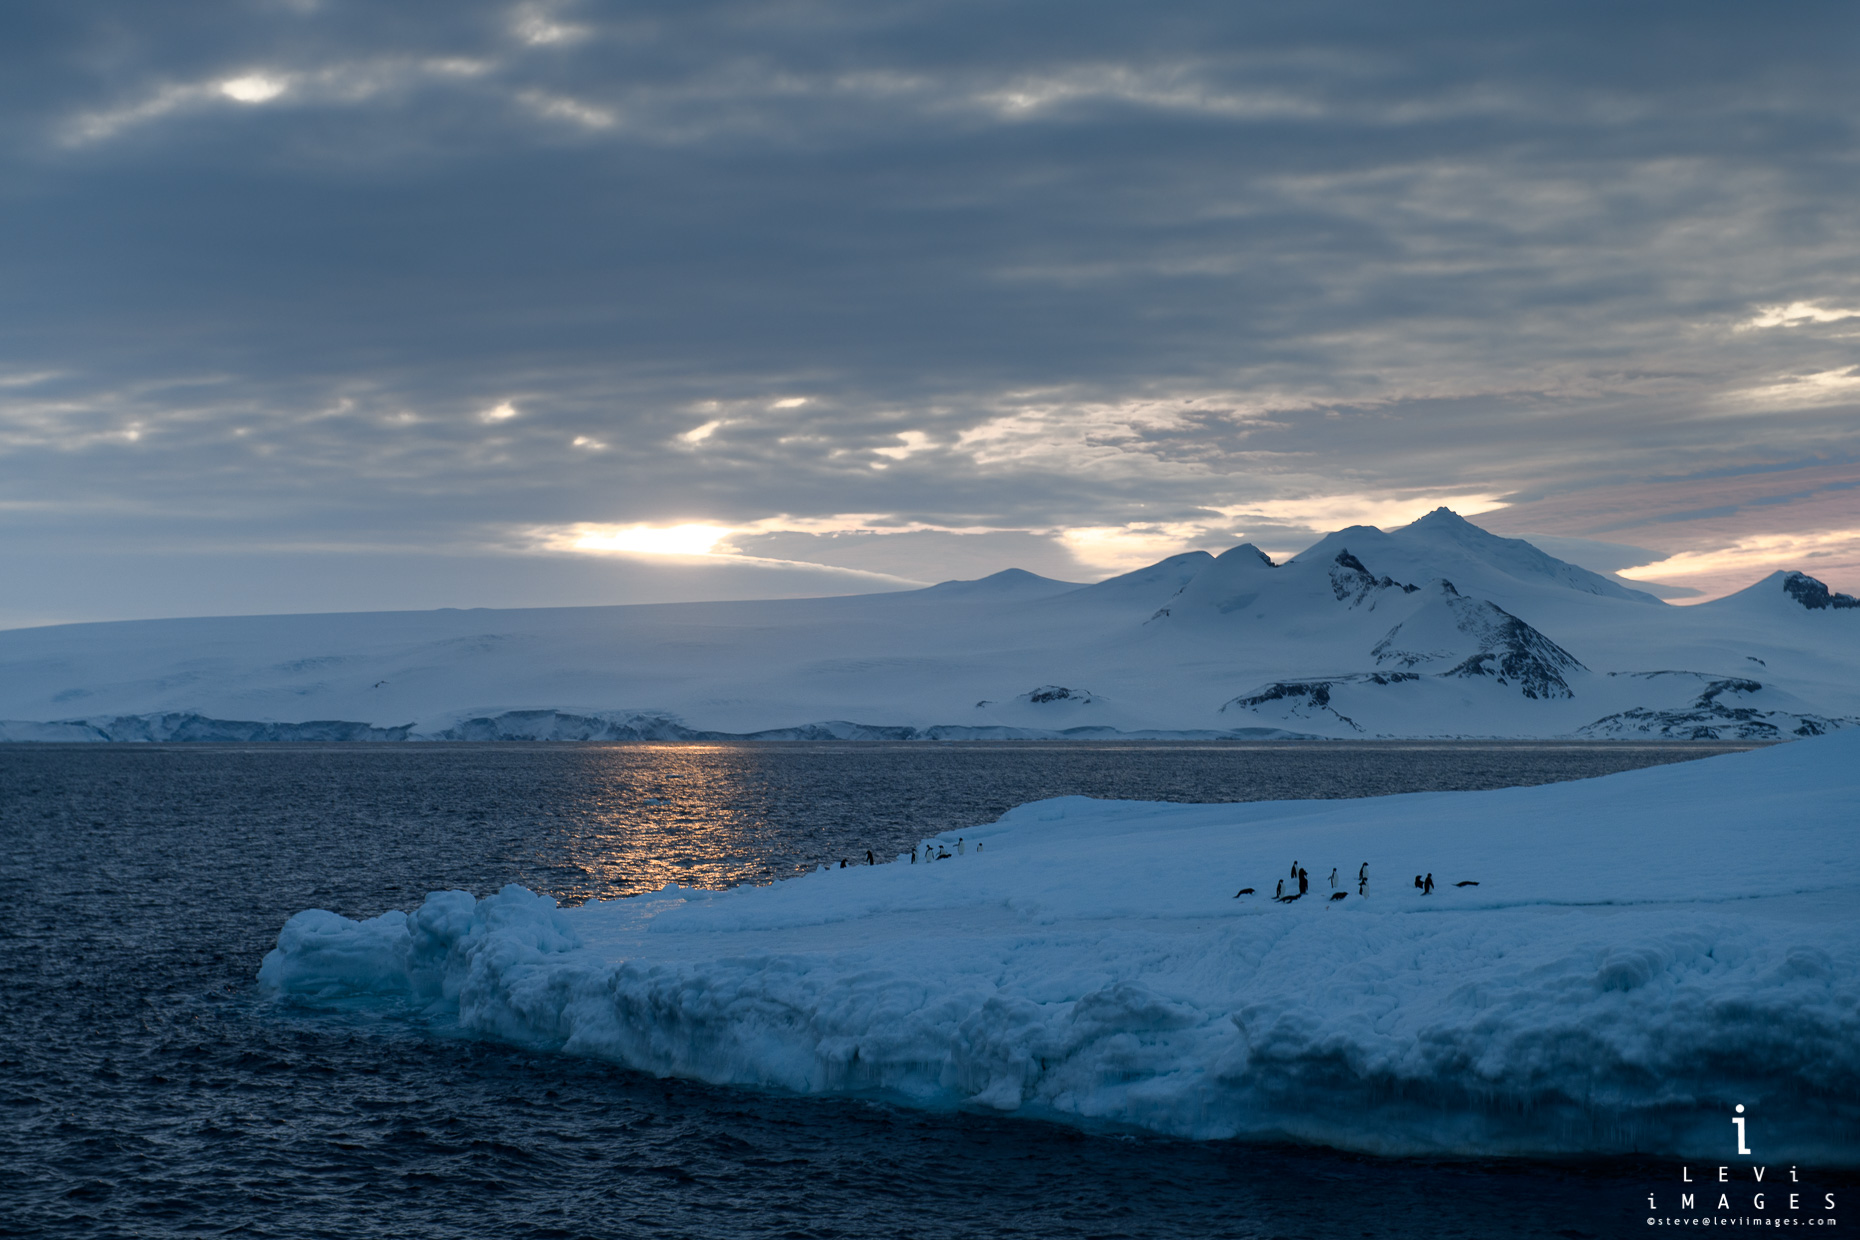 Penguins gather on iceberg as the sun sets. Antarctica